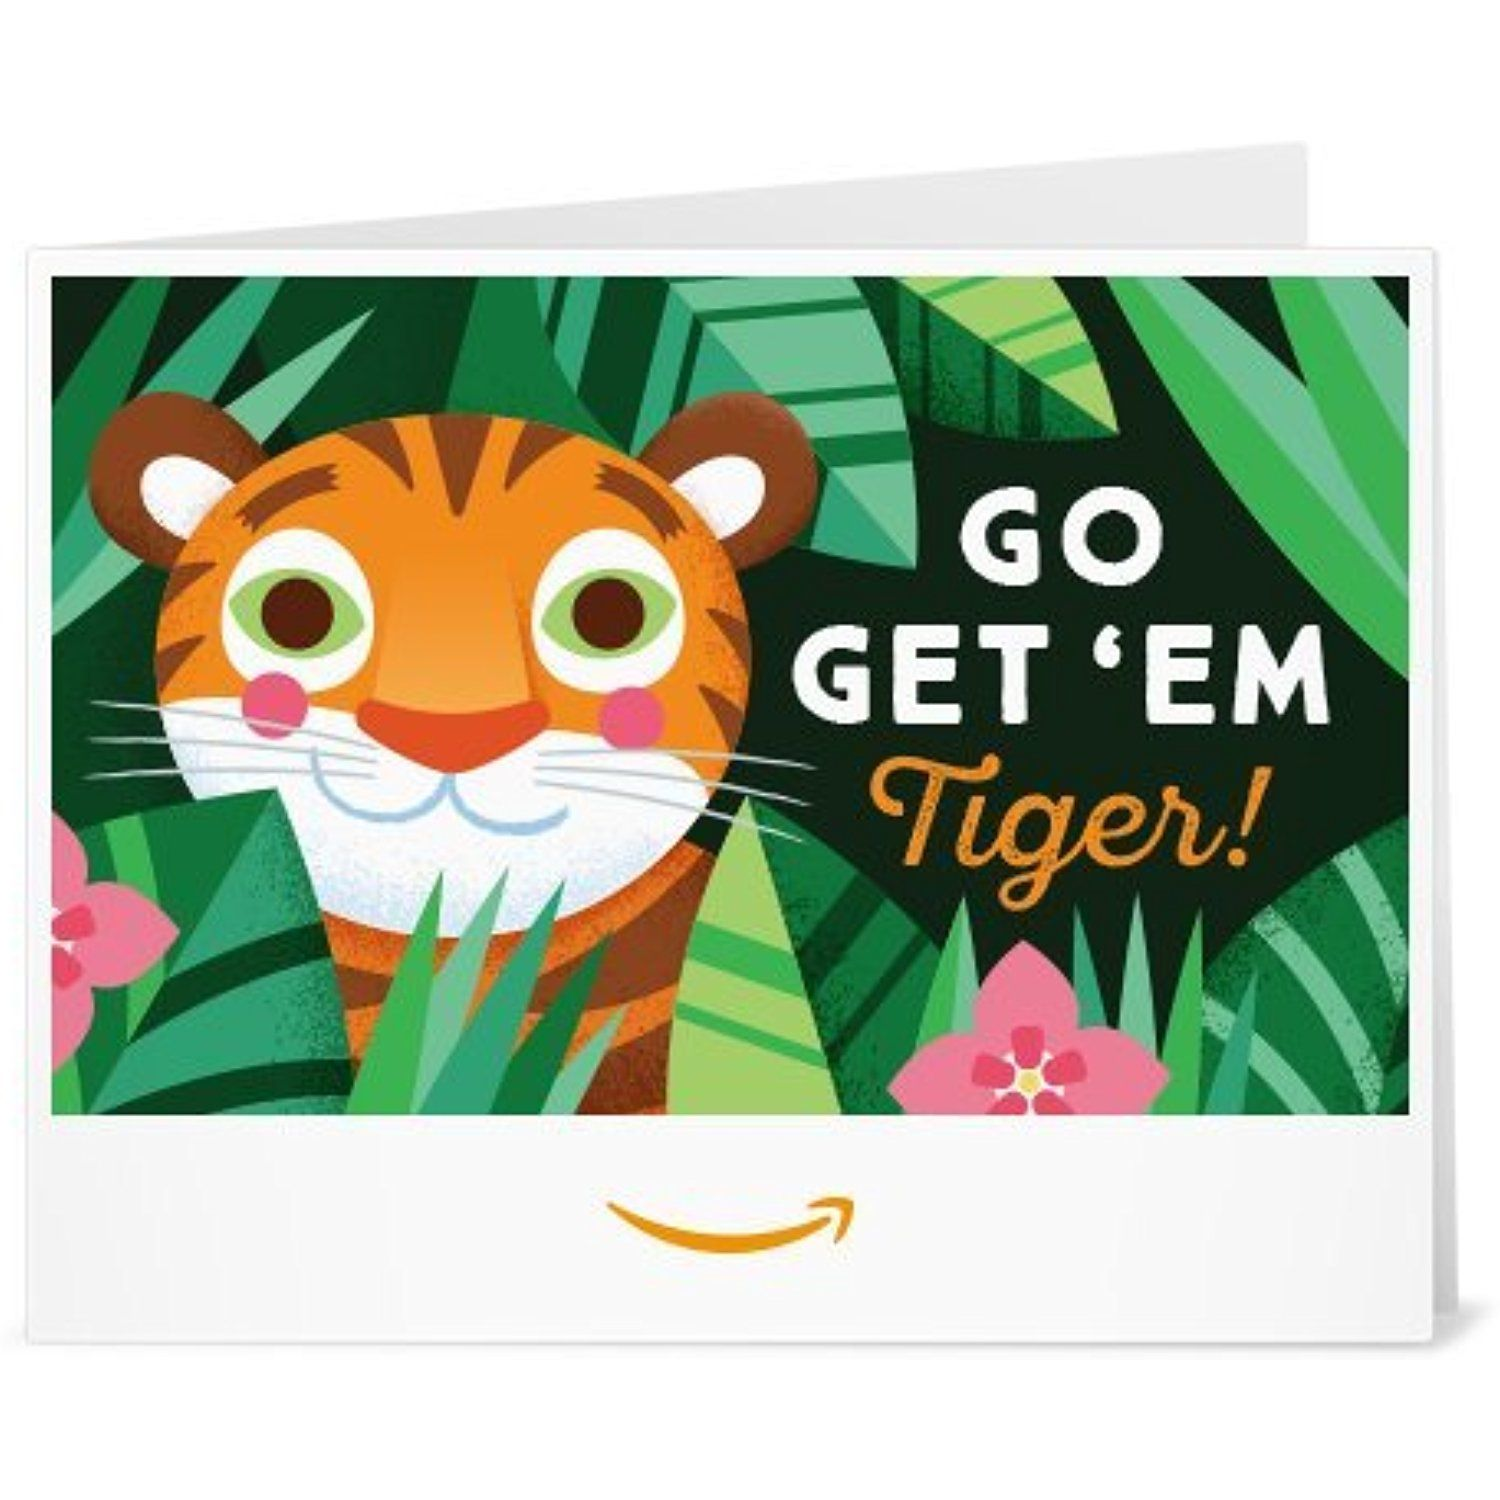 Amazon Com Gift Cards Print At Home Click Image For More Details This Is An Affiliate Link Gift Card Printing Gift Card Design Amazon Gift Cards